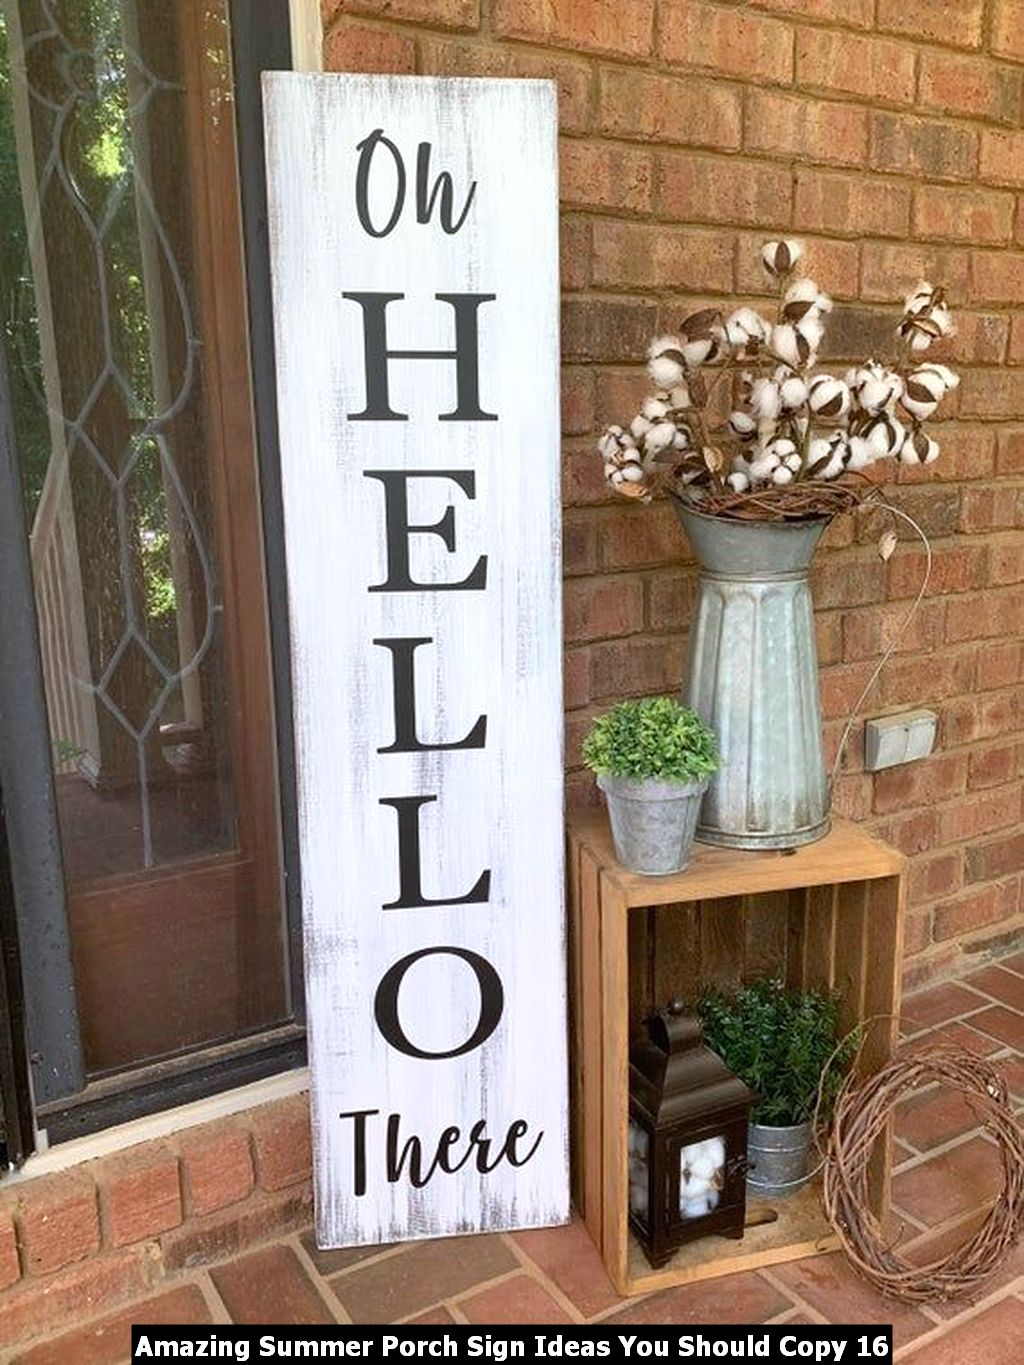 Amazing Summer Porch Sign Ideas You Should Copy 16